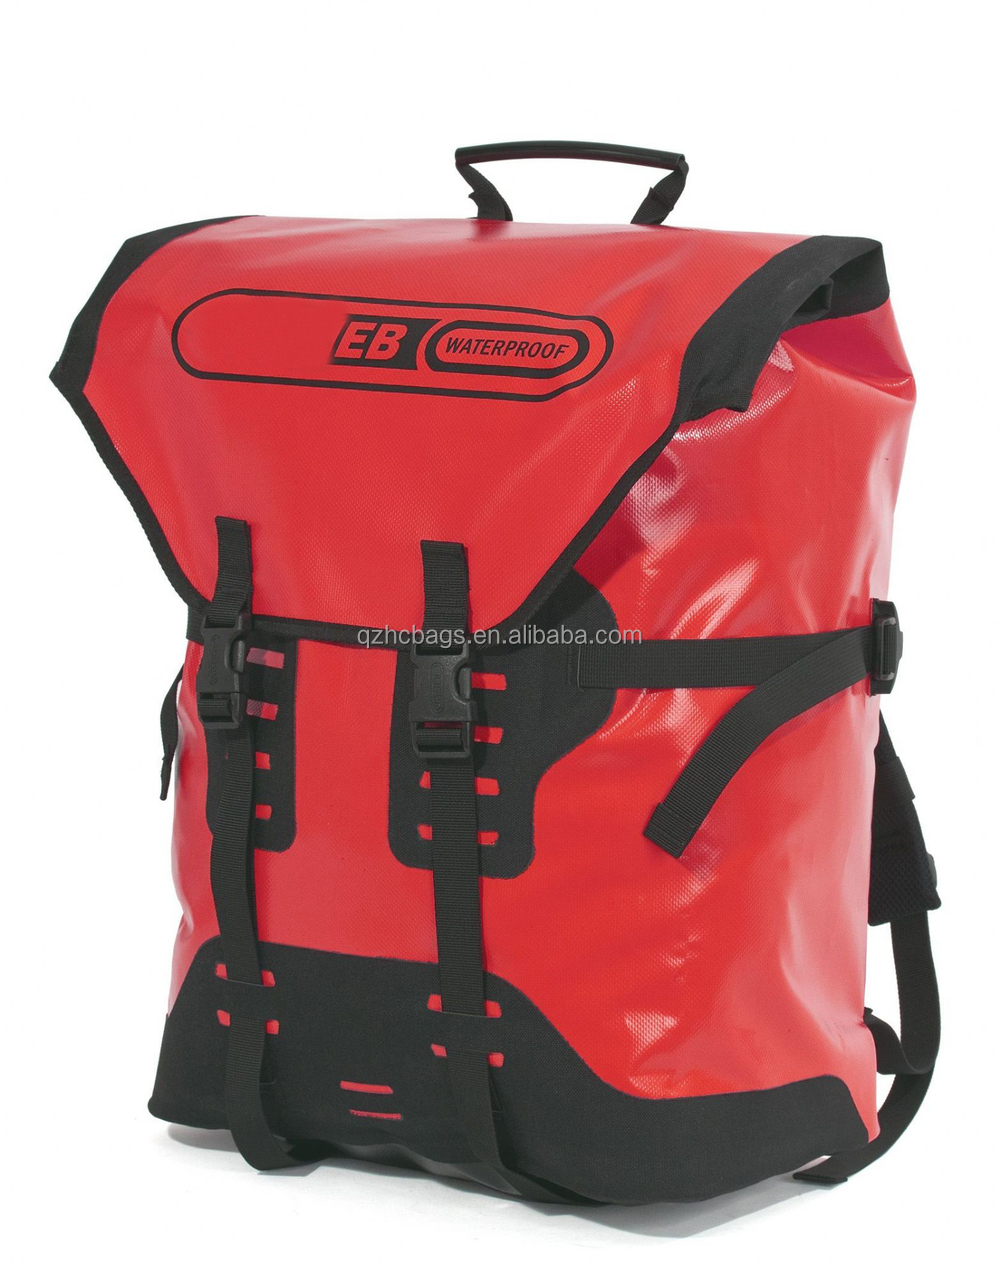 Waterproof Rucksack with laptop compartment (ESC-S096)